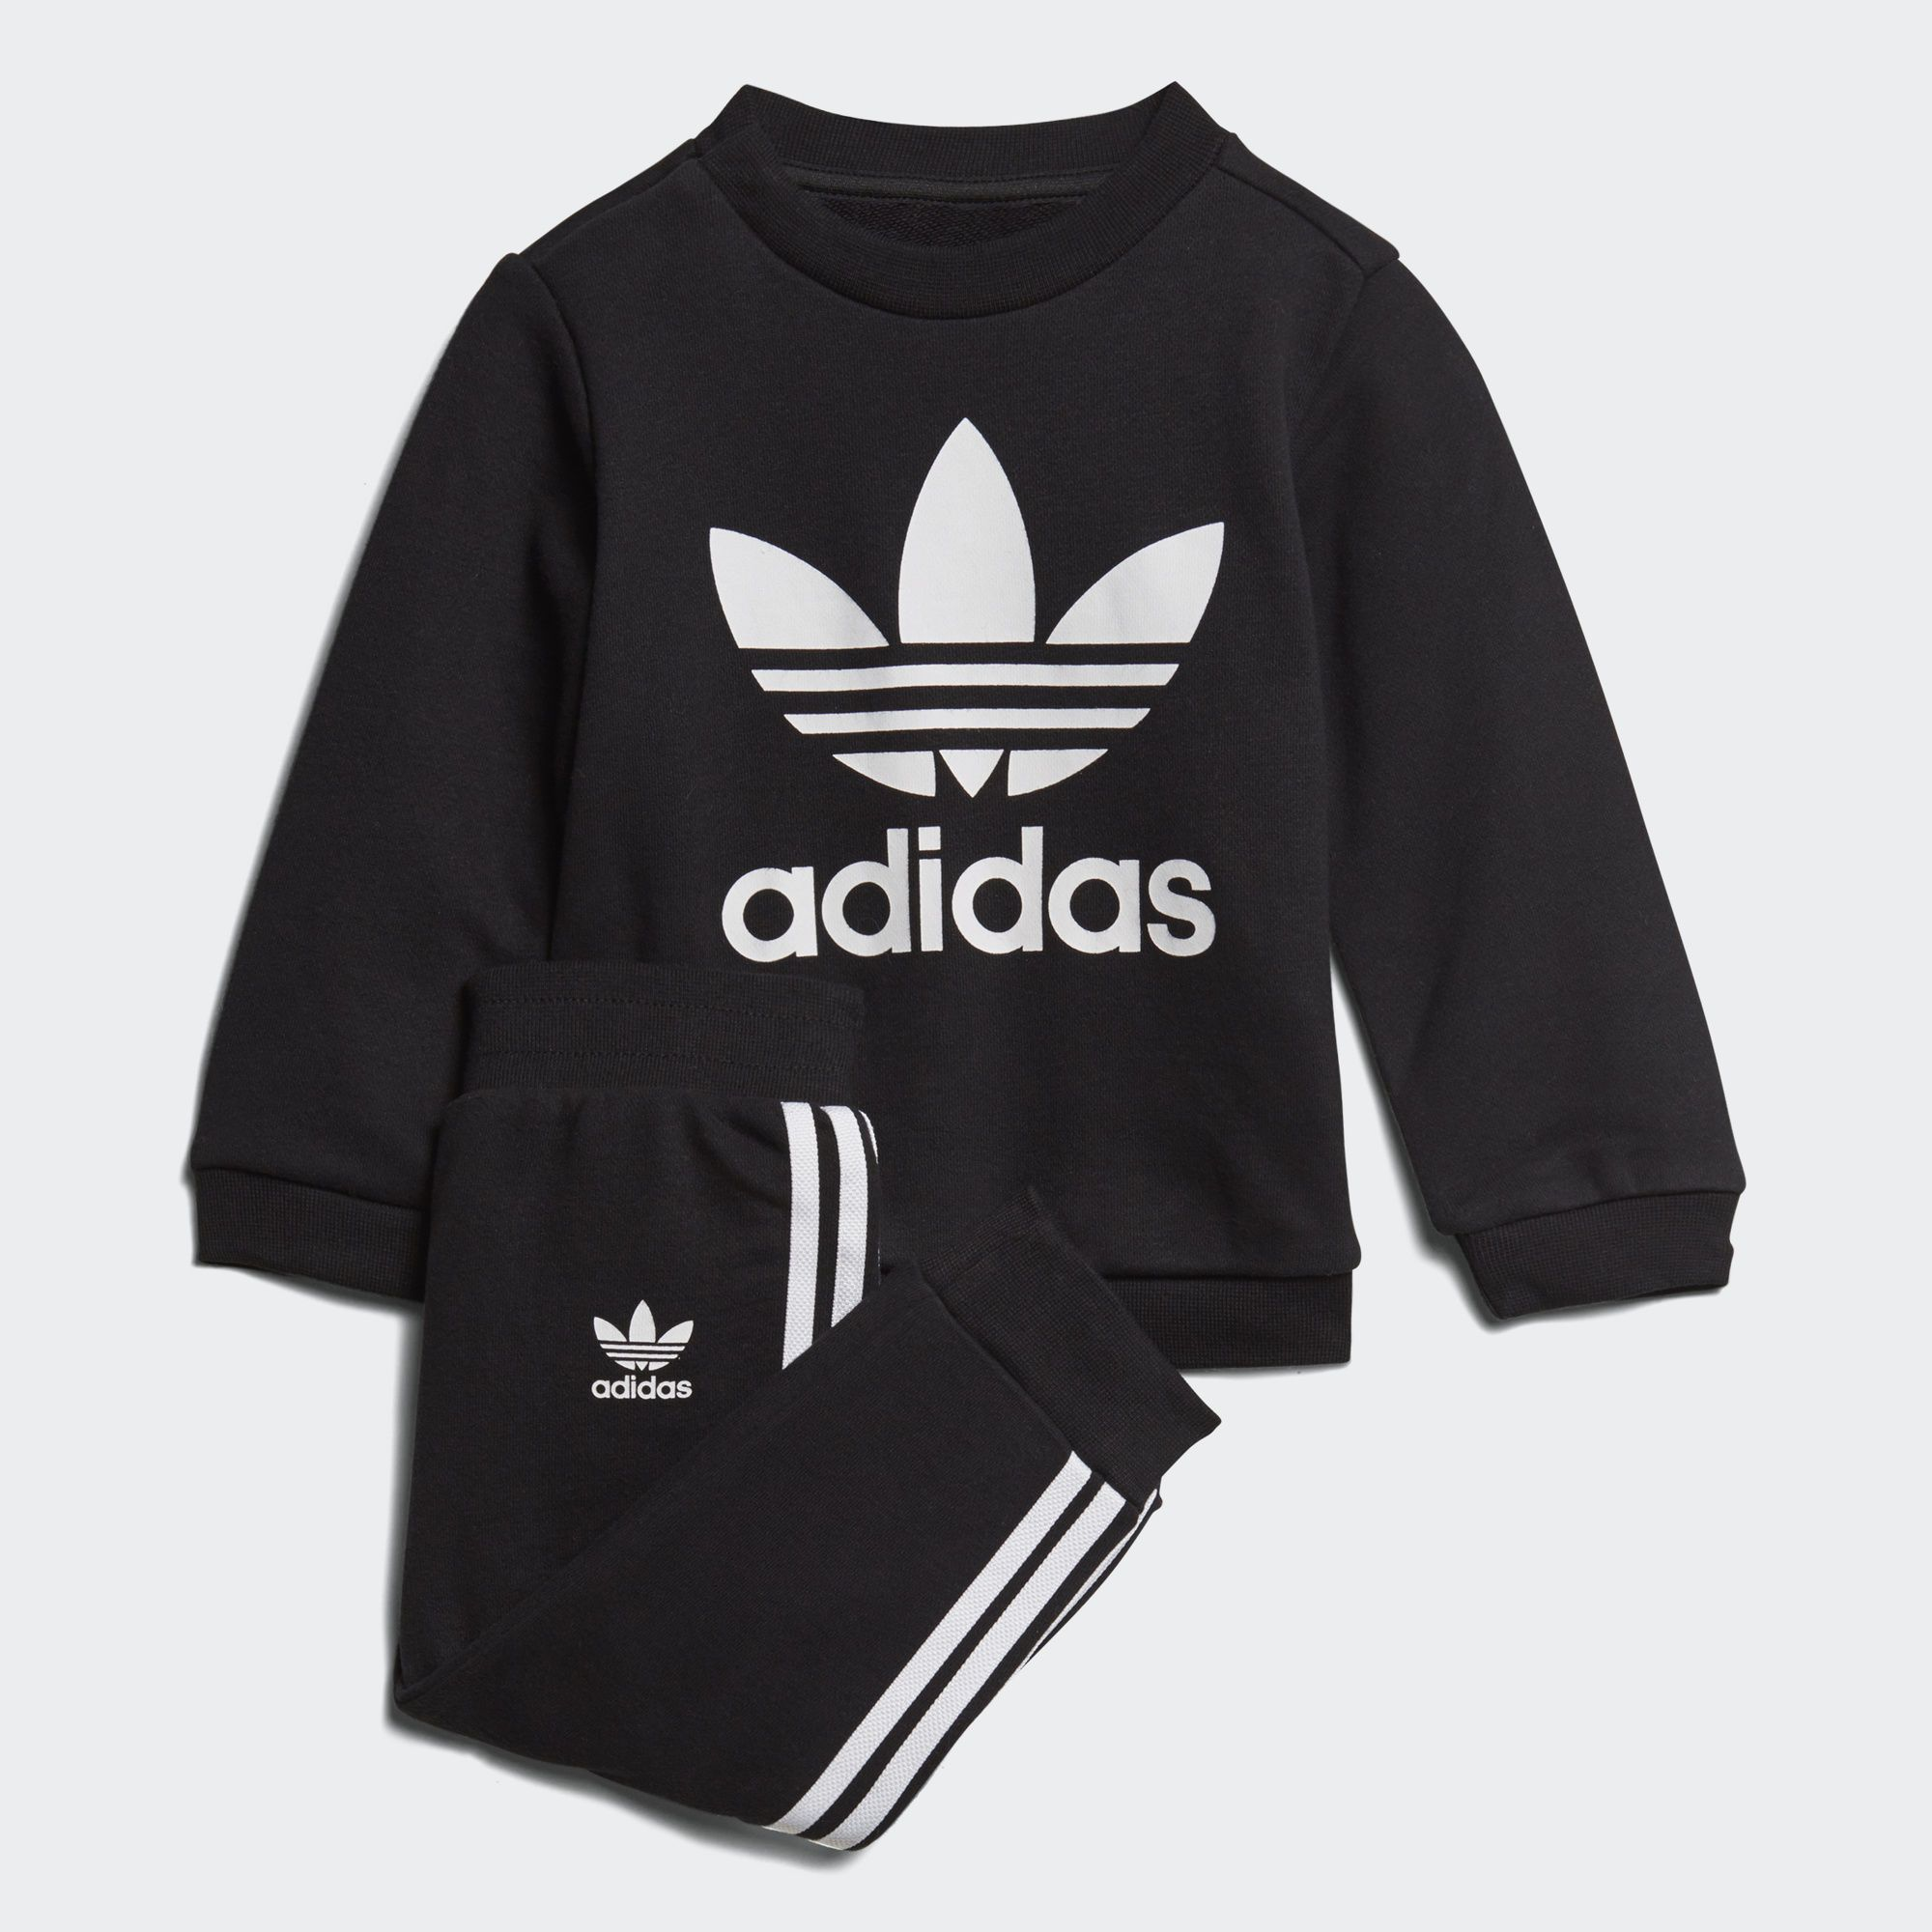 f44c17dd15 They're never too young for bold sporty style. This infants' set ...